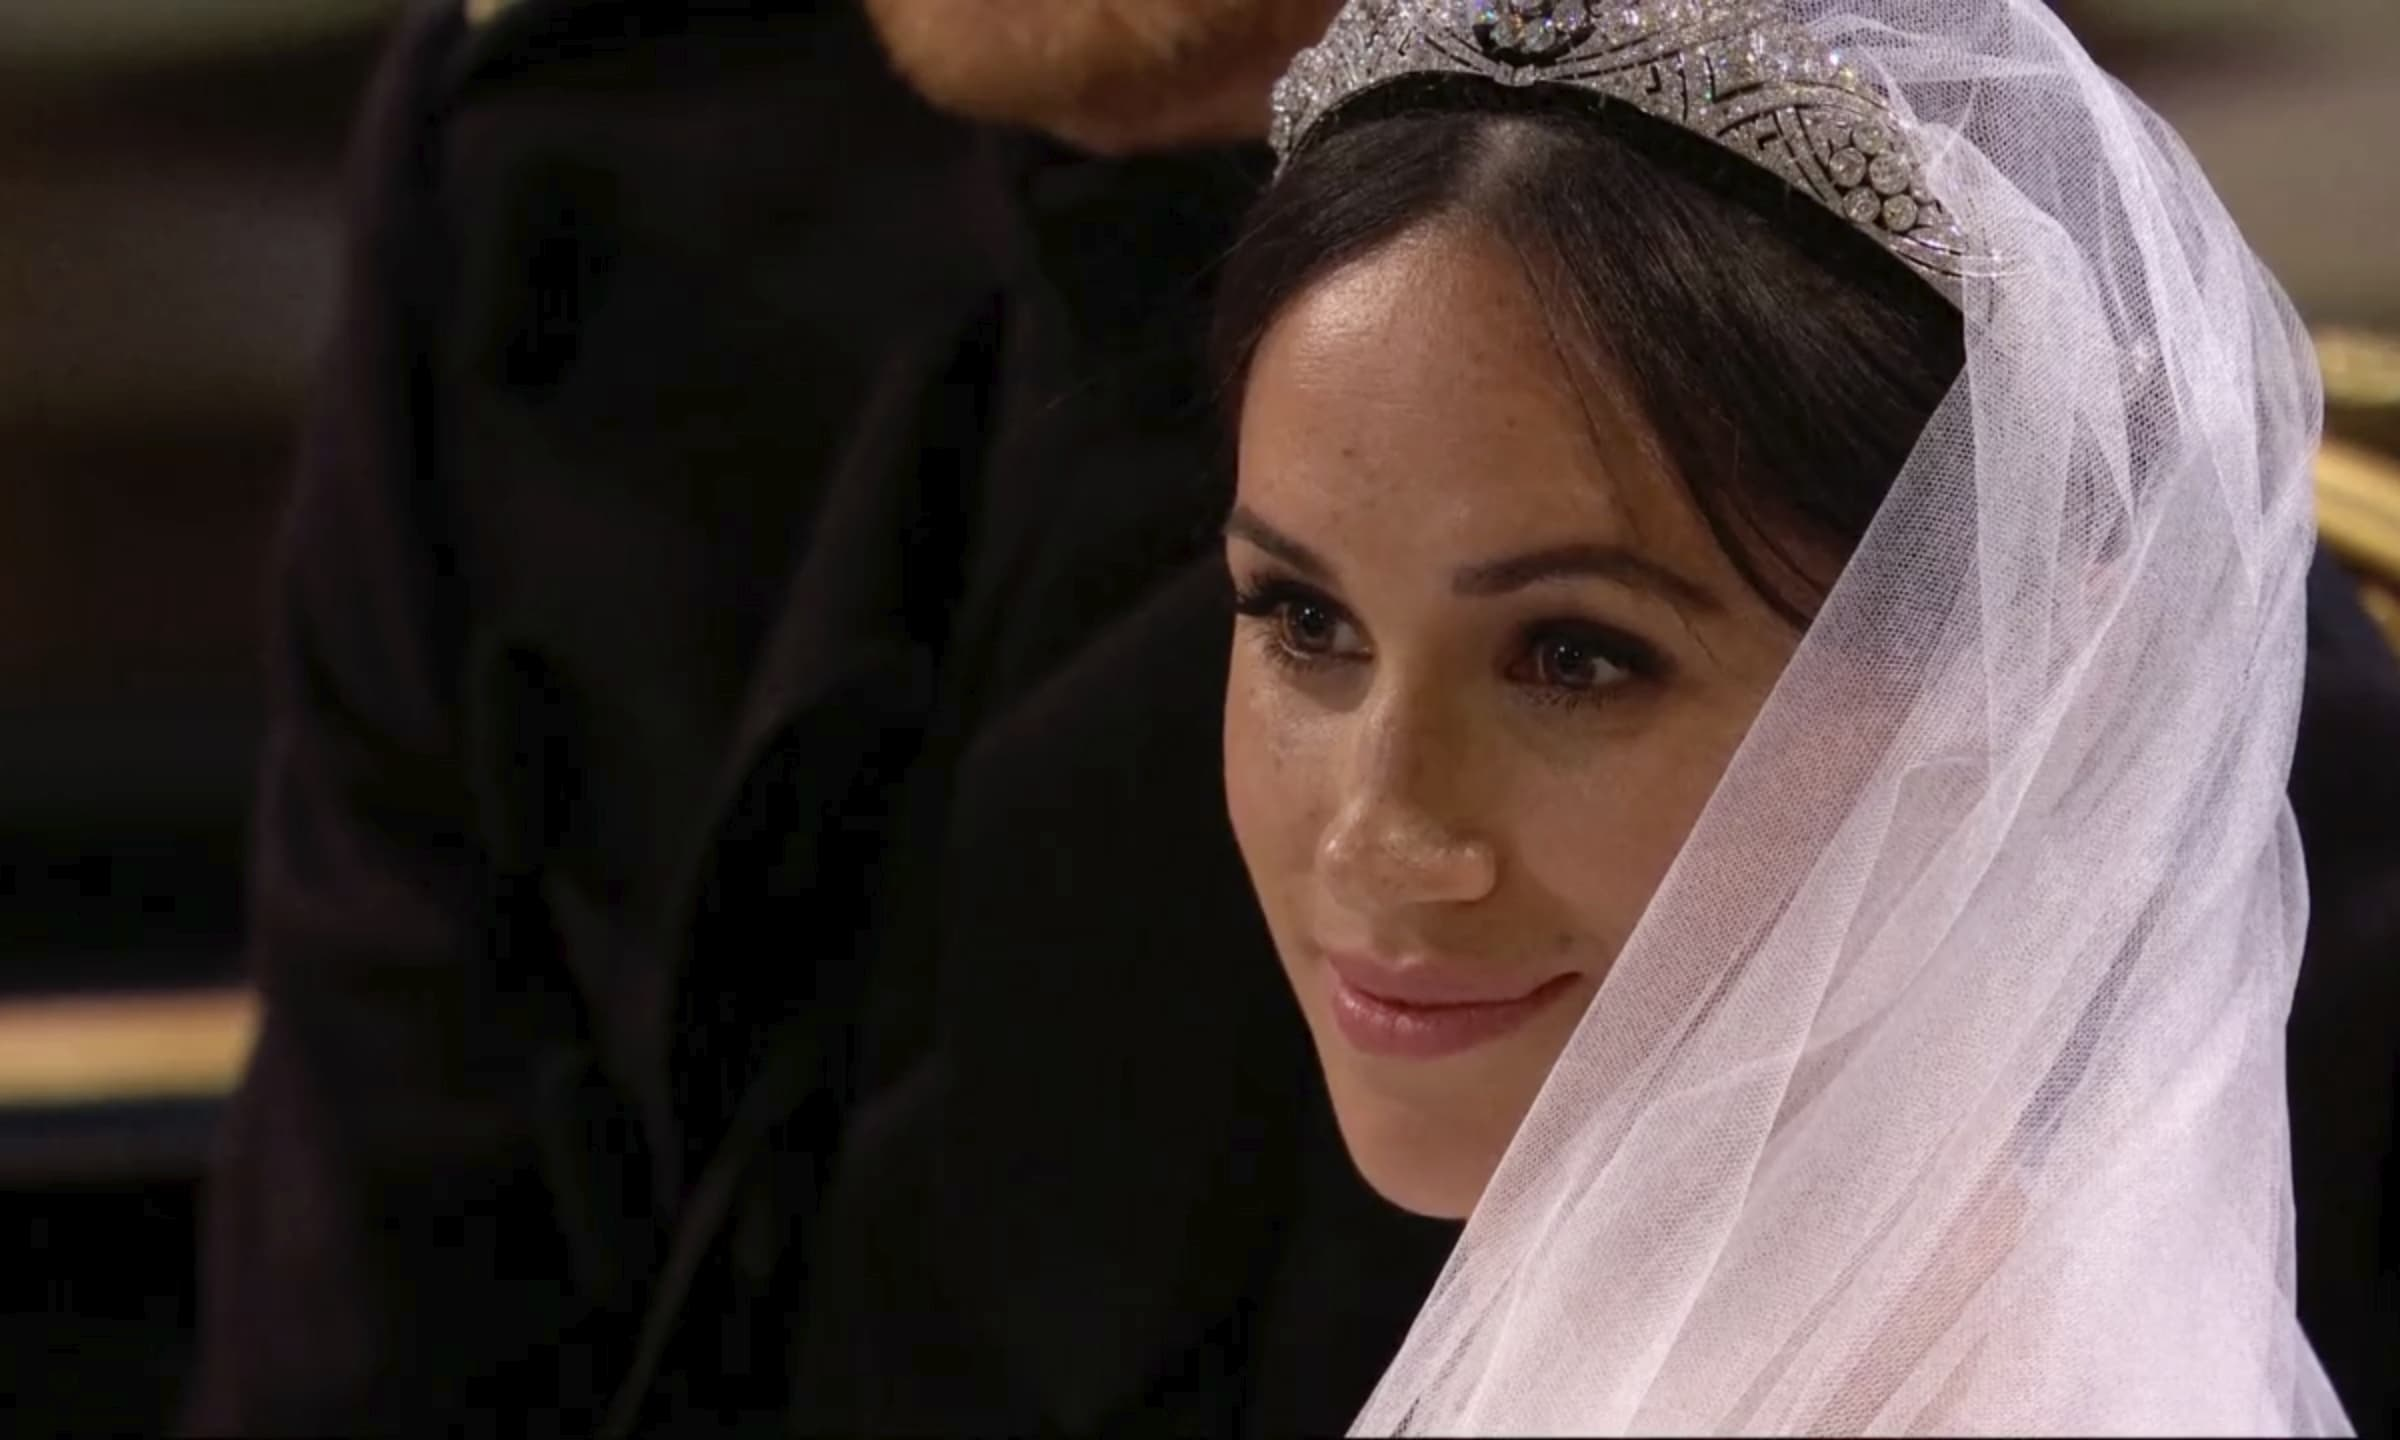 Meghan Markle listens during her wedding ceremony with Britain's Prince Harry at St. George's Chapel in Windsor Castle in Windsor, near London, England, Saturday, May 19, 2018.  (UK Pool/Sky News via AP)